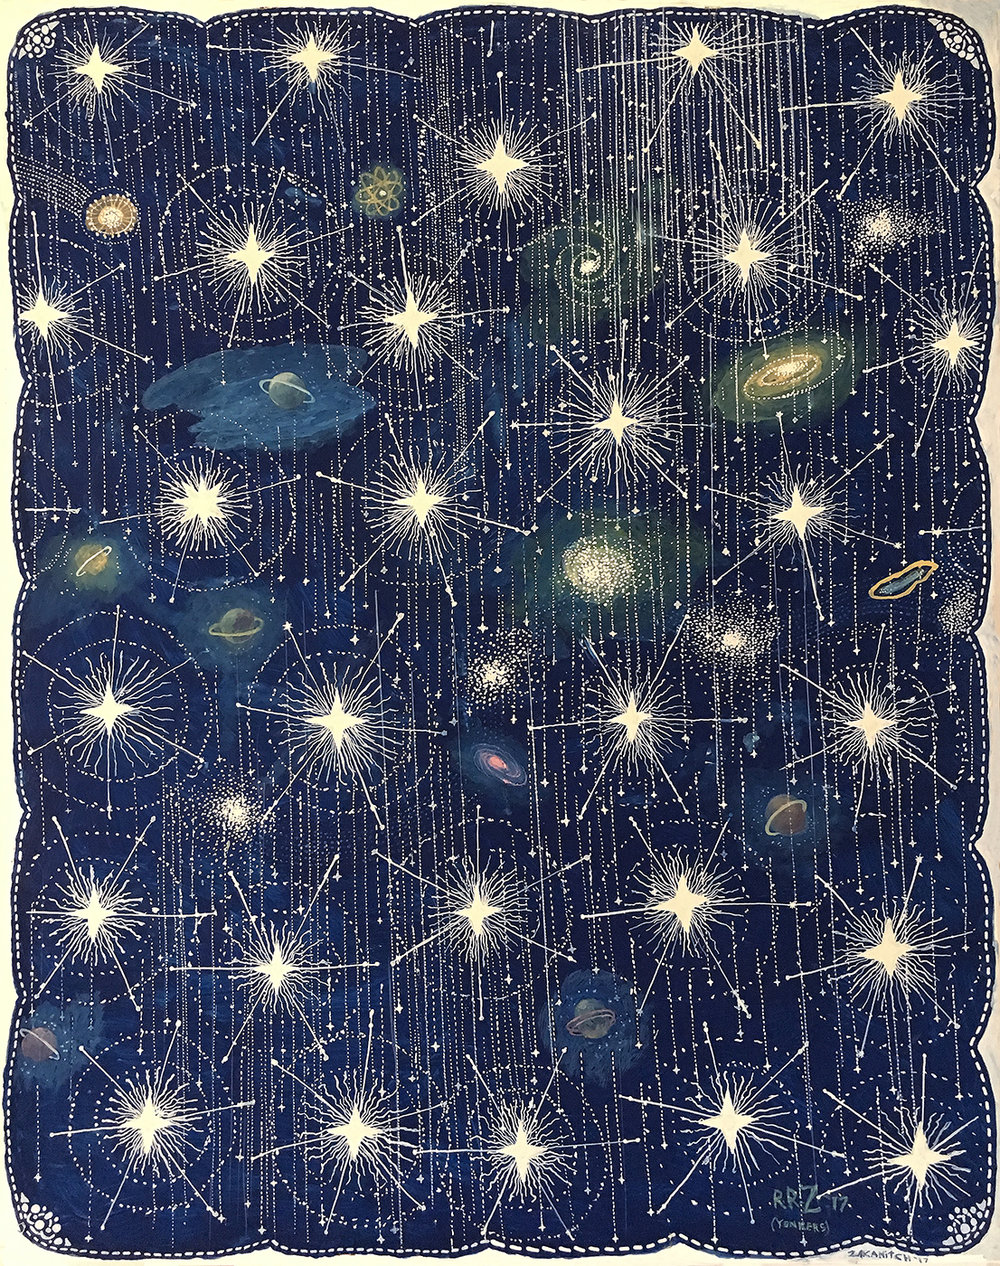 Star Shower (Celestial Series), 2017